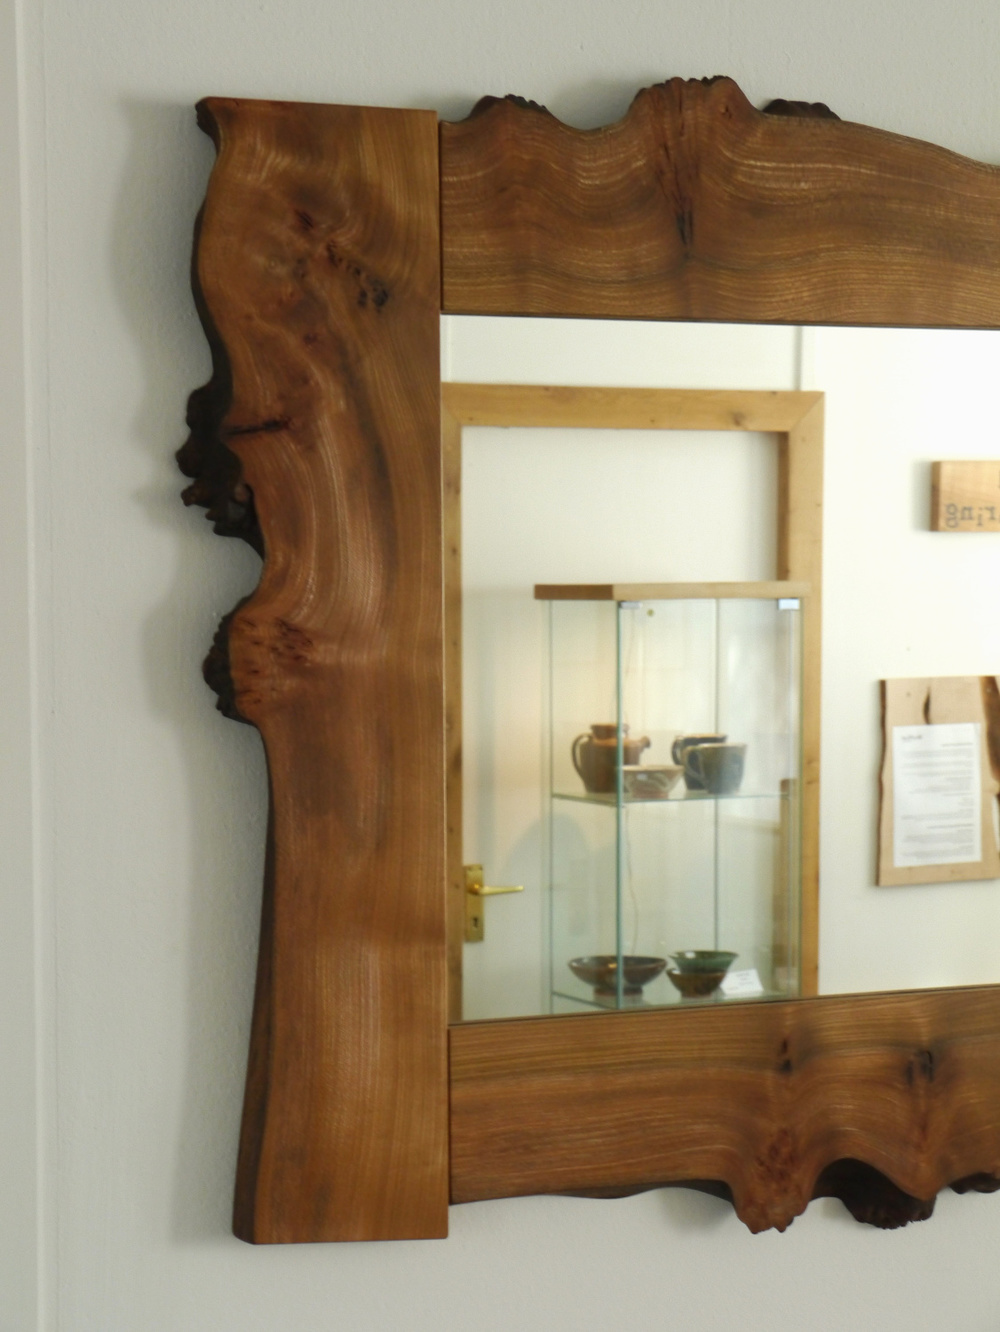 Waney Edge Elm Mirror2.JPG